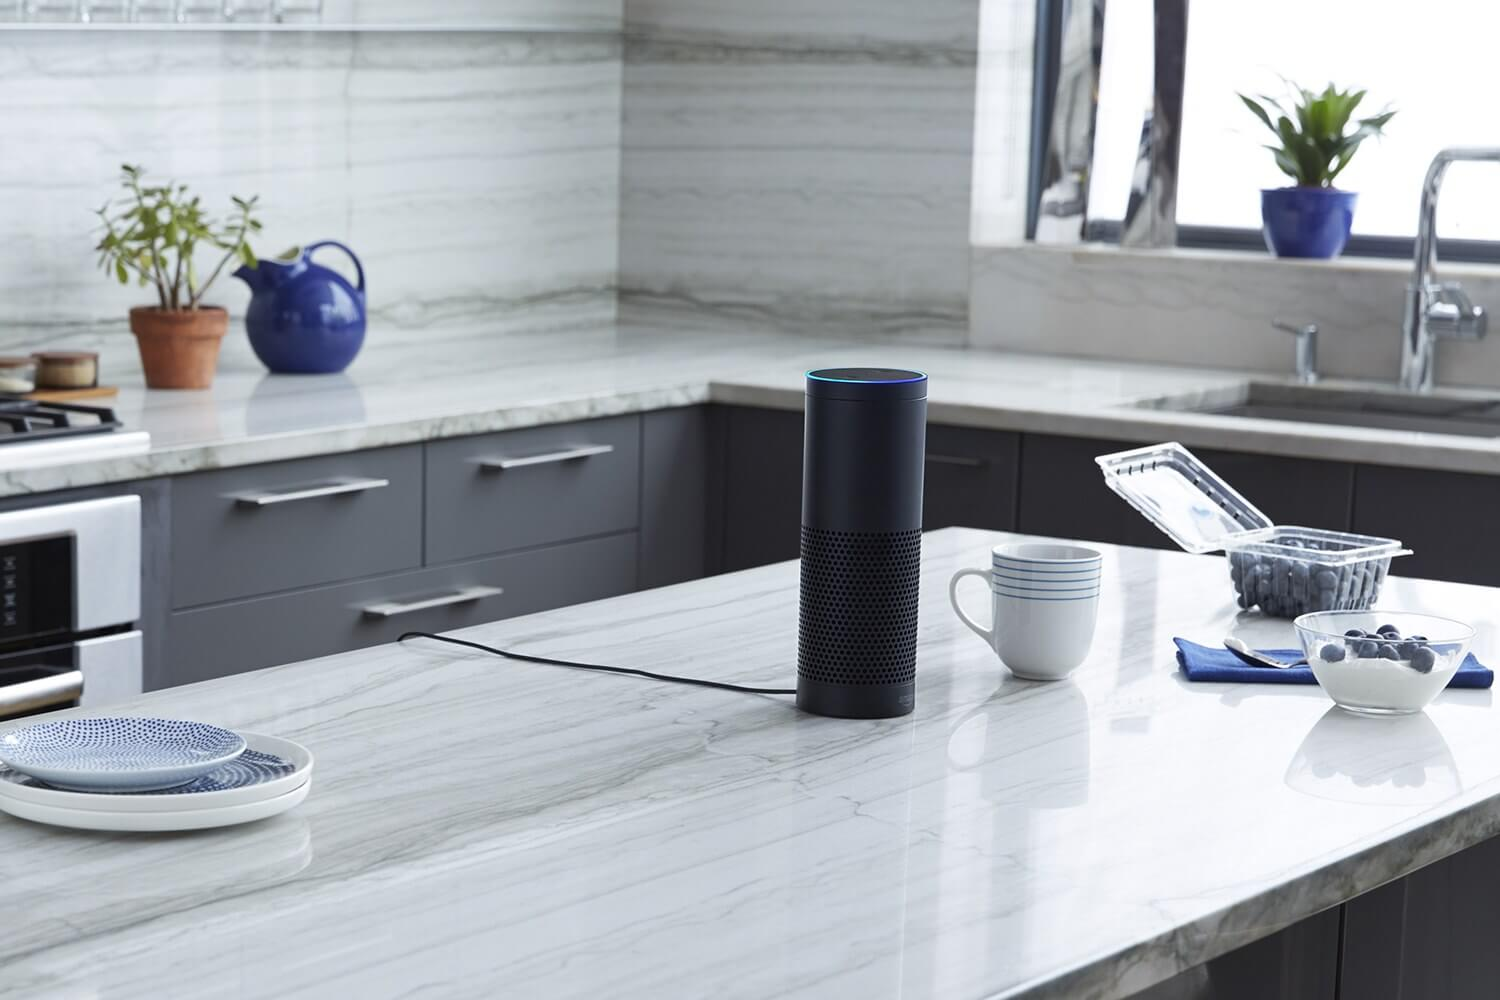 Amazon adiciona respostas emotivas à Alexa